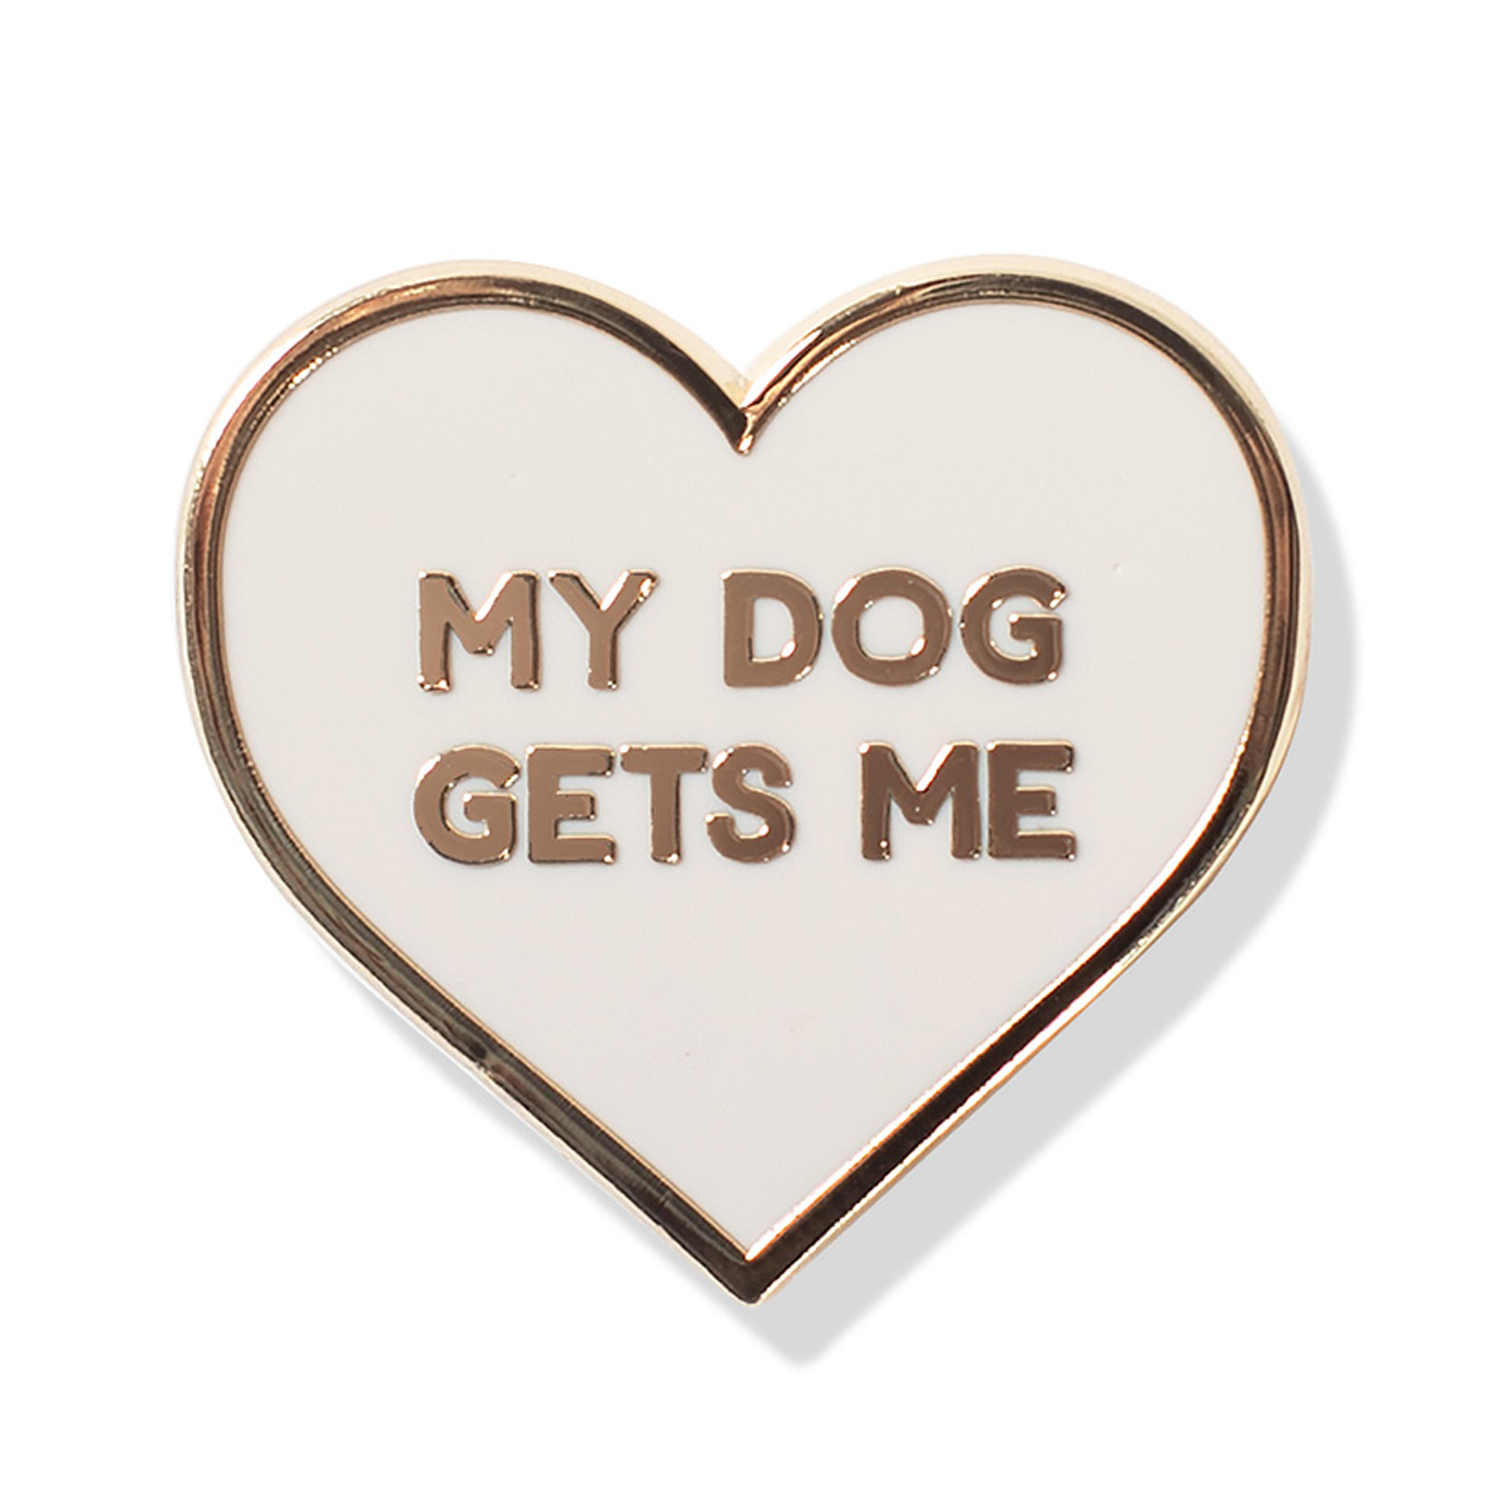 My Dog Gets Me Enamel Pin